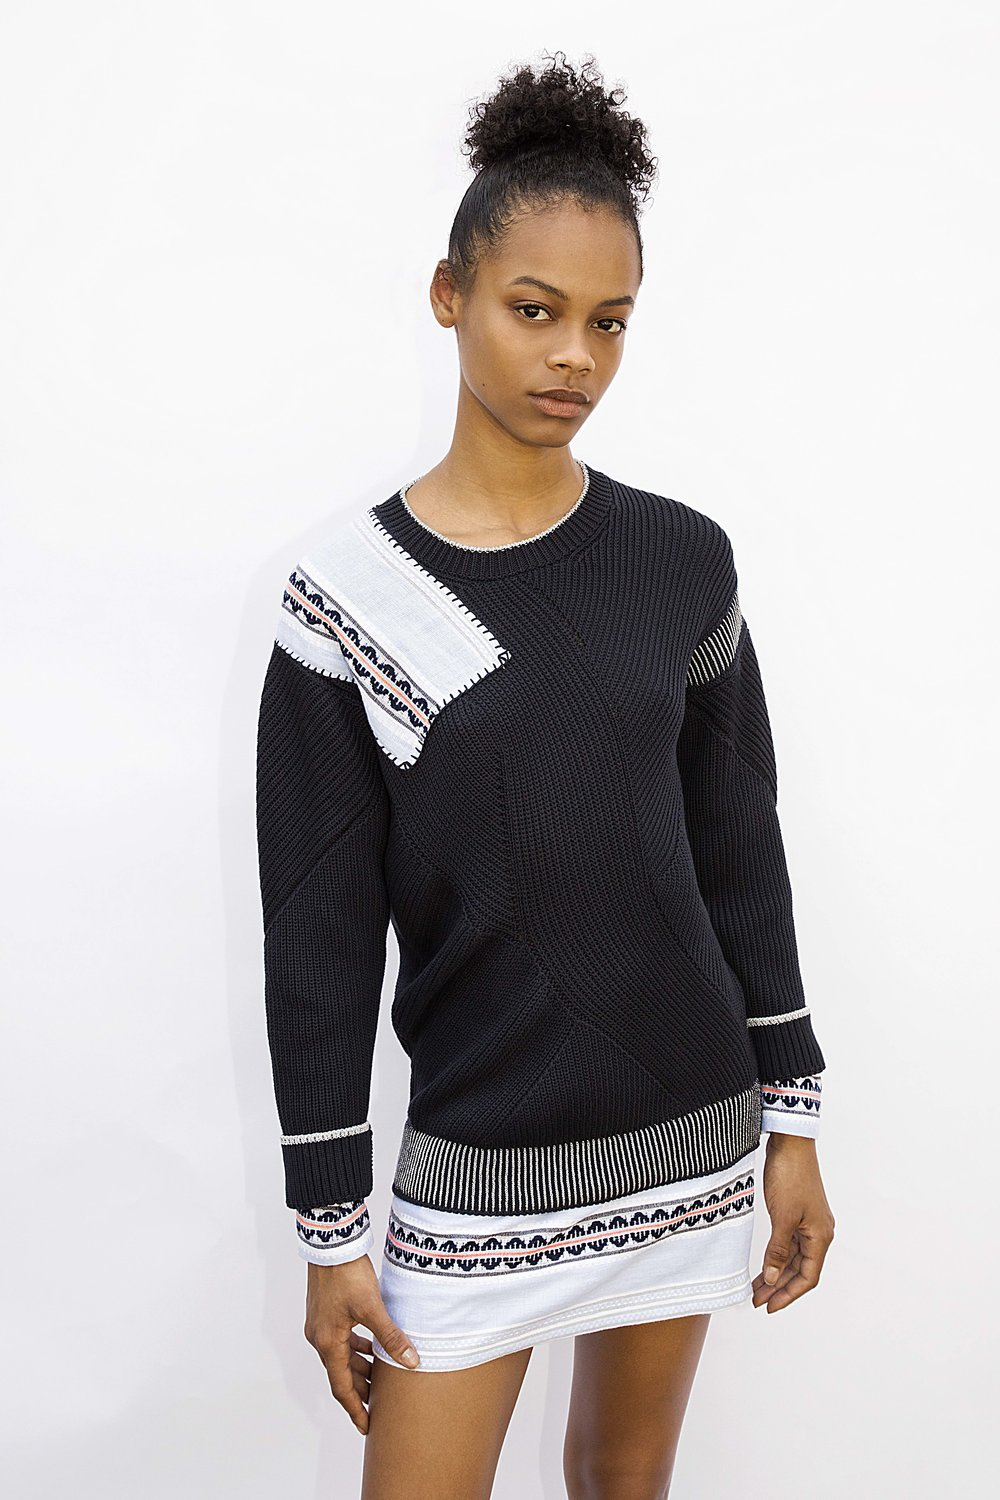 Liya Kebede's design for Generous Sweaters/Sonia Rykiel. All photos courtesy of Sonia Rykiel.